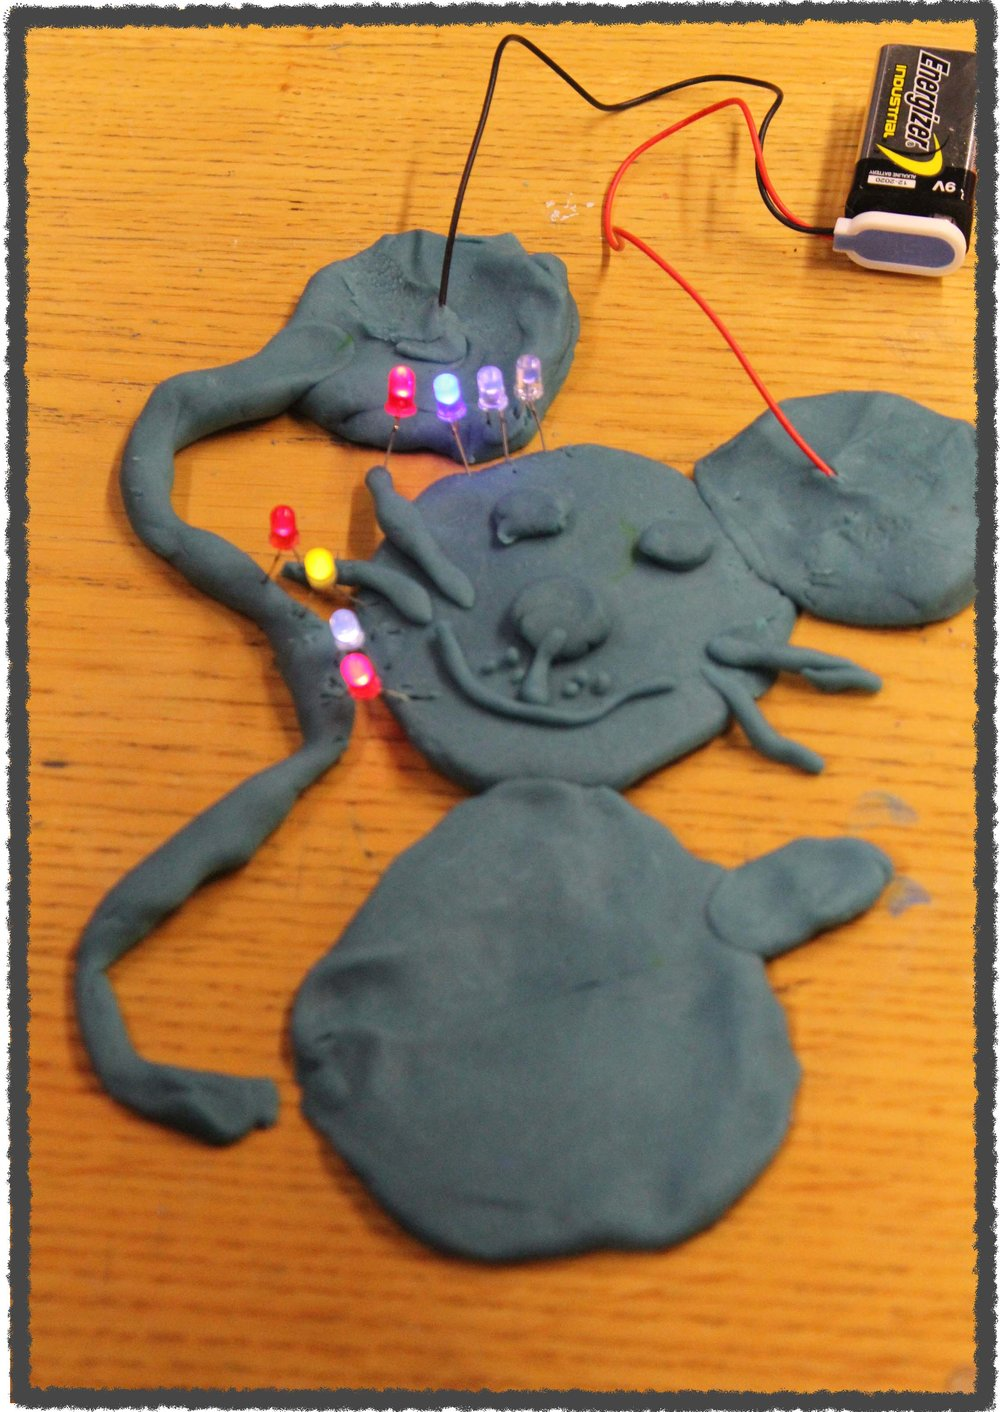 STEAM: Explore circuit building with conductive clay and LEDs